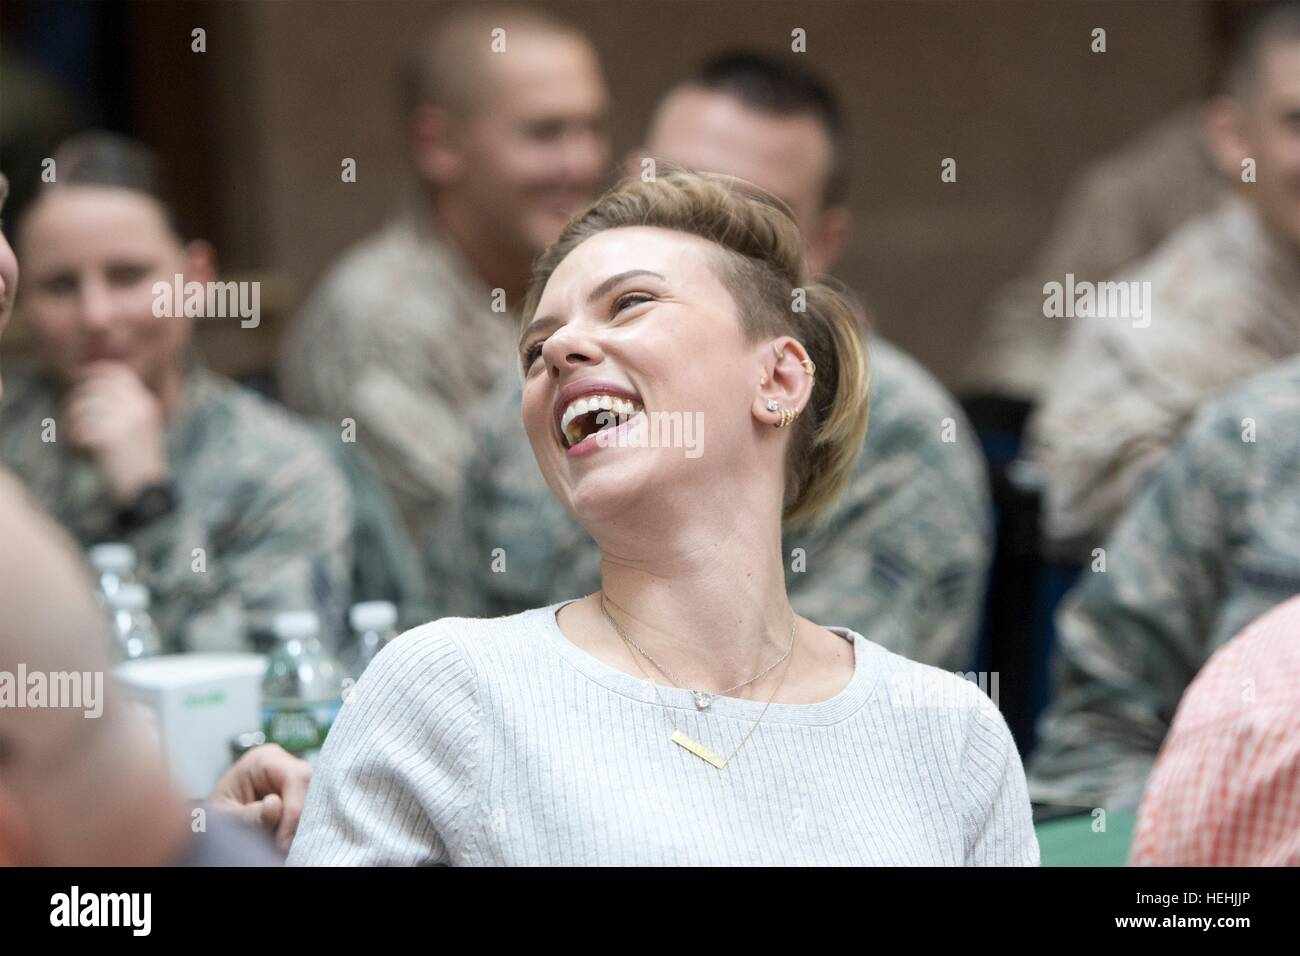 Actress Scarlett Johansson visits U.S. soldiers during a USO troop engagement tour at the Incirlik Air Base December - Stock Image